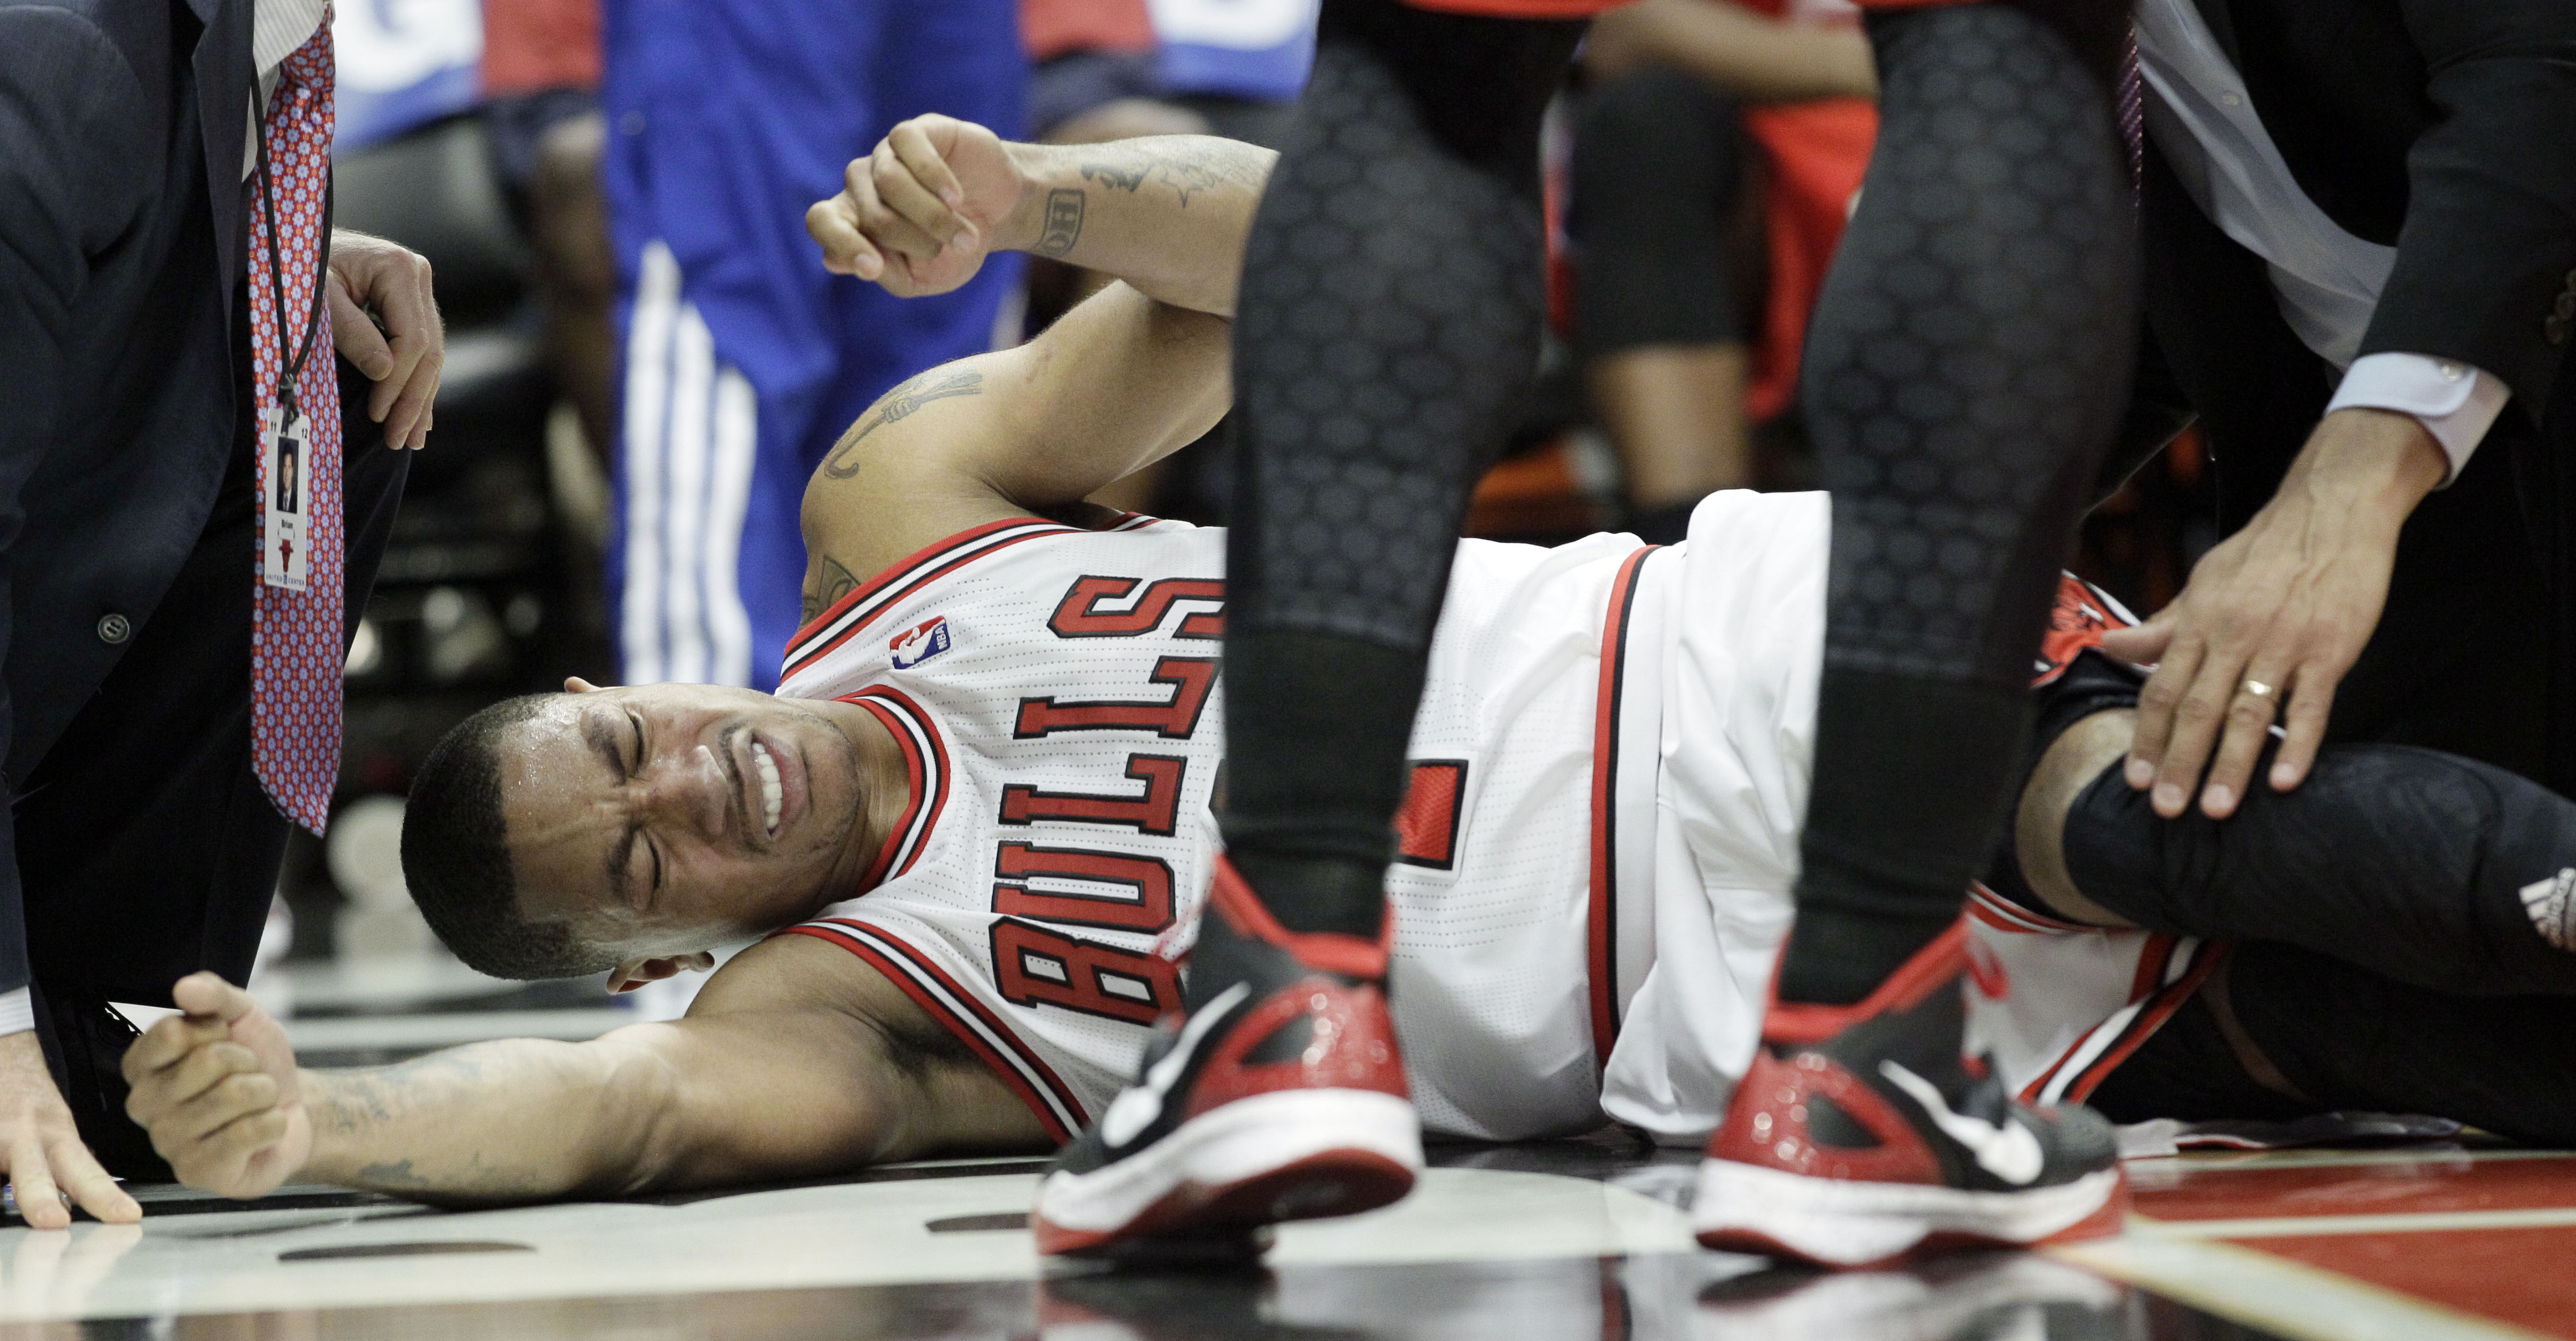 Chicago Bulls guard Derrick Rose reacts after an injury during the fourth quarter of Game 1 in the first round of the NBA playoffs against the Philadelphia 76ers on April 28, 2012. (Nam Y. Huh/Associated Press)